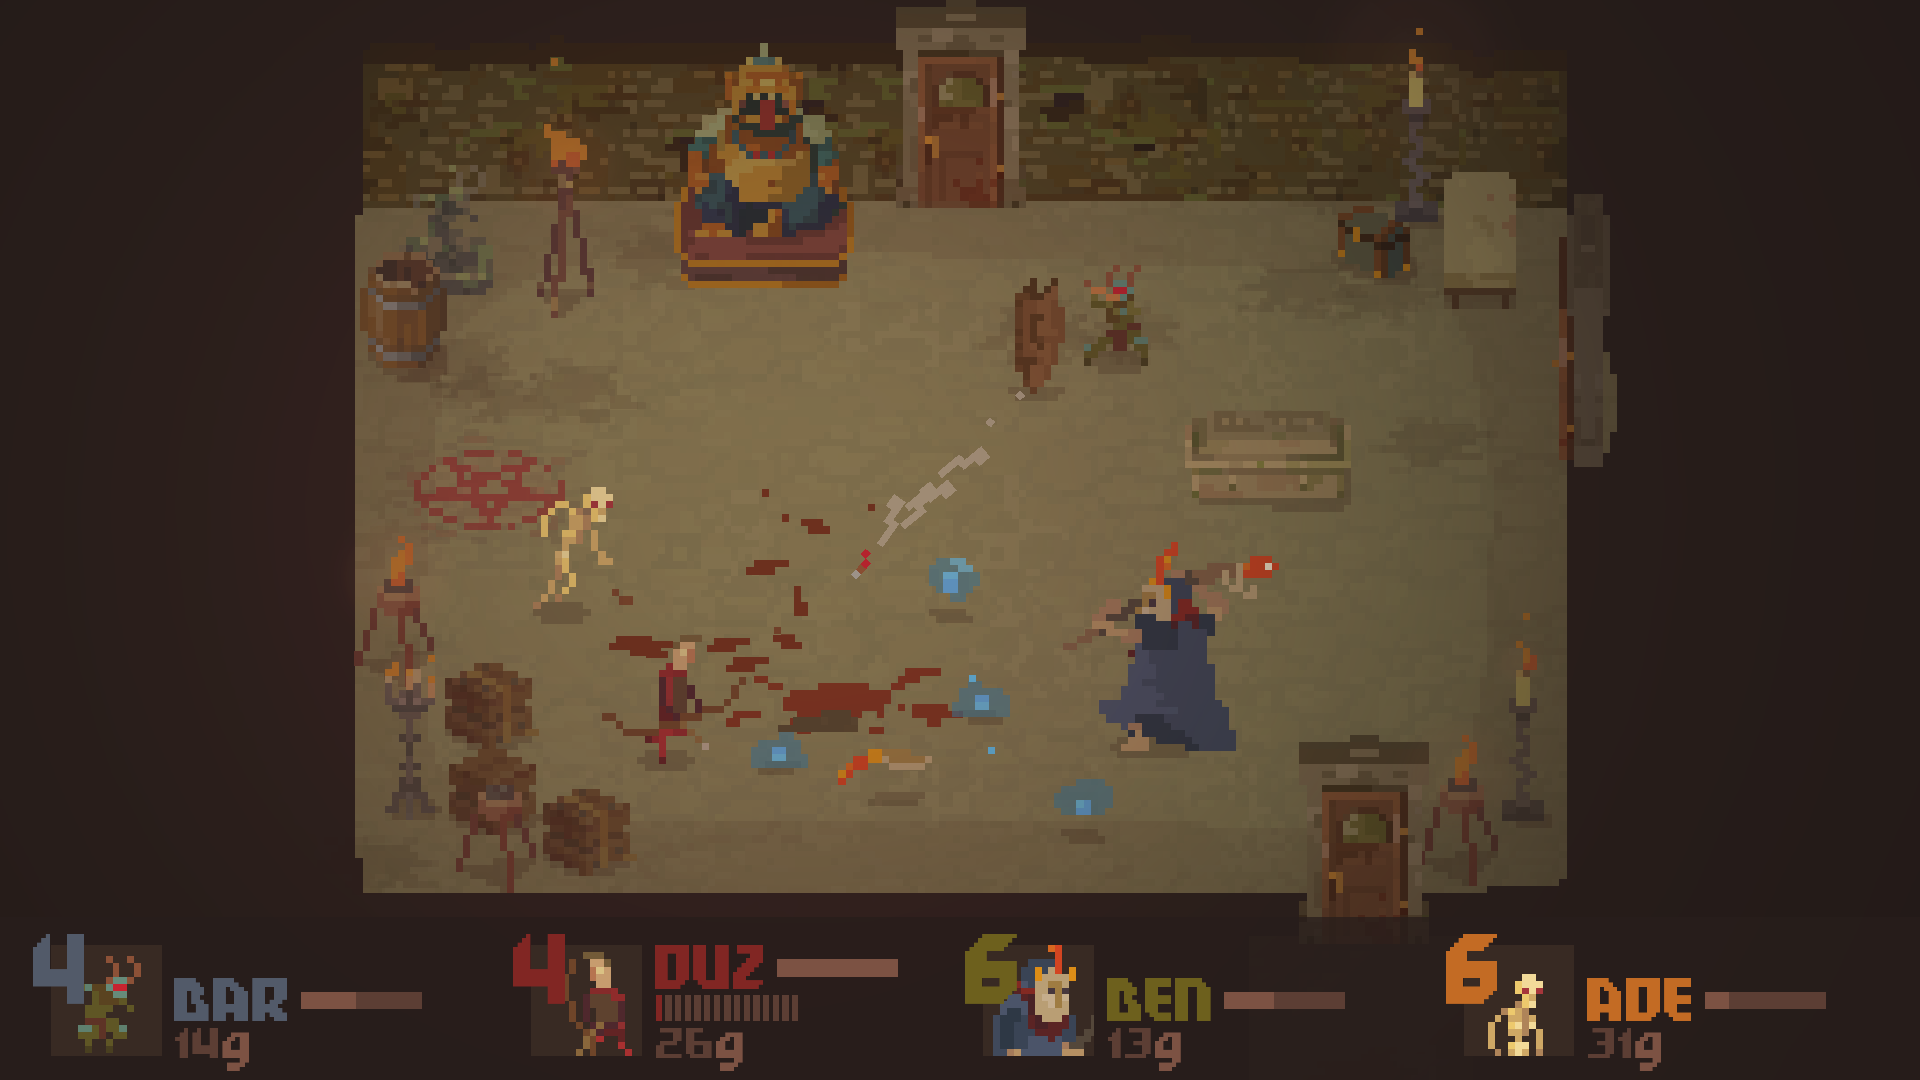 Gameplay from indie brawler, Crawl. Three players control monsters and attack a human player. Blood and bloodsoaked pentagrams litter the ground of a brown dungeon.